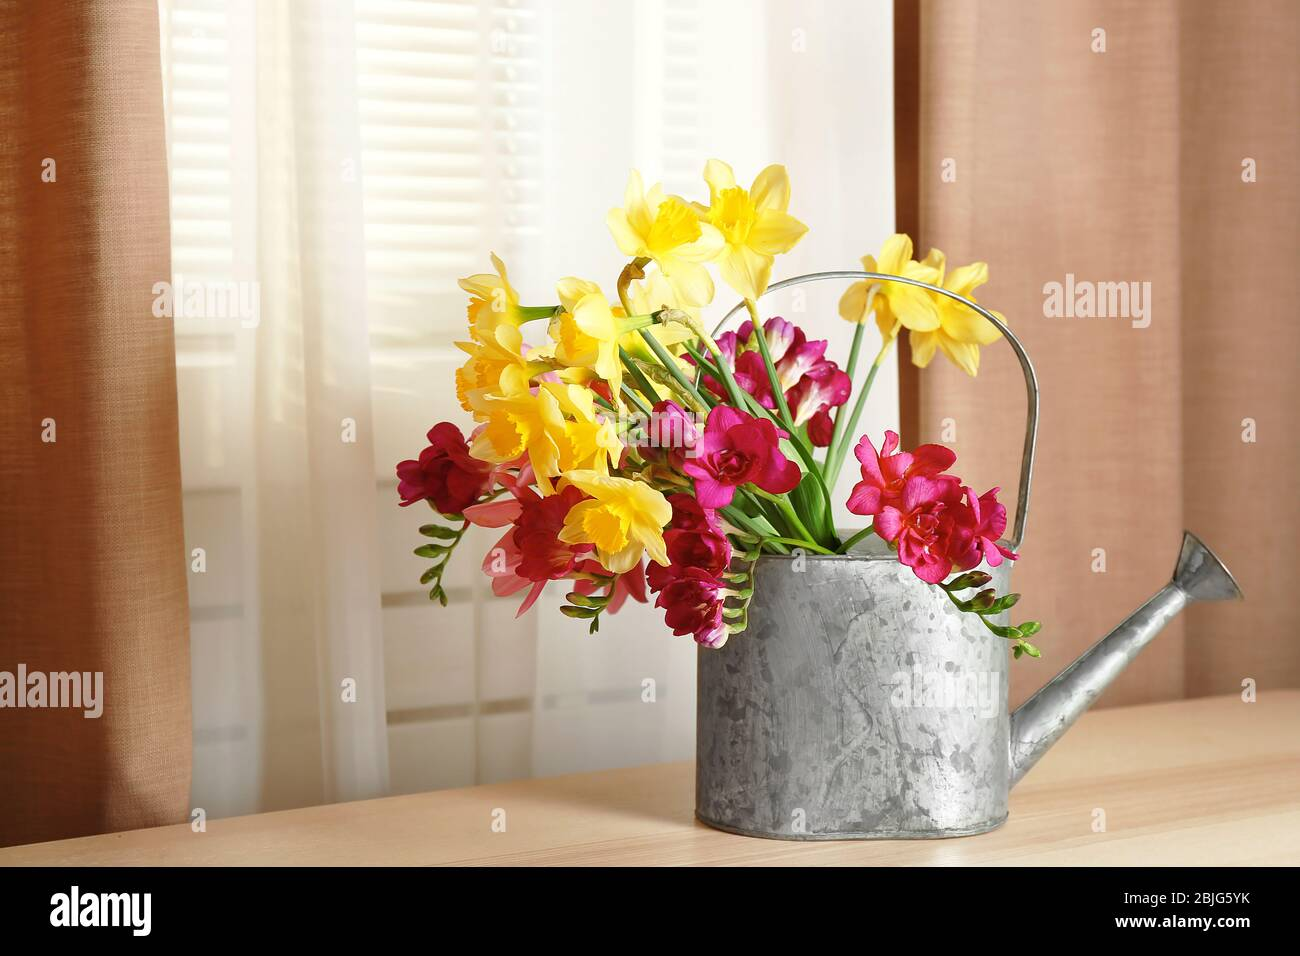 Vintage Watering Can With Beautiful Flowers On Table Stock Photo Alamy